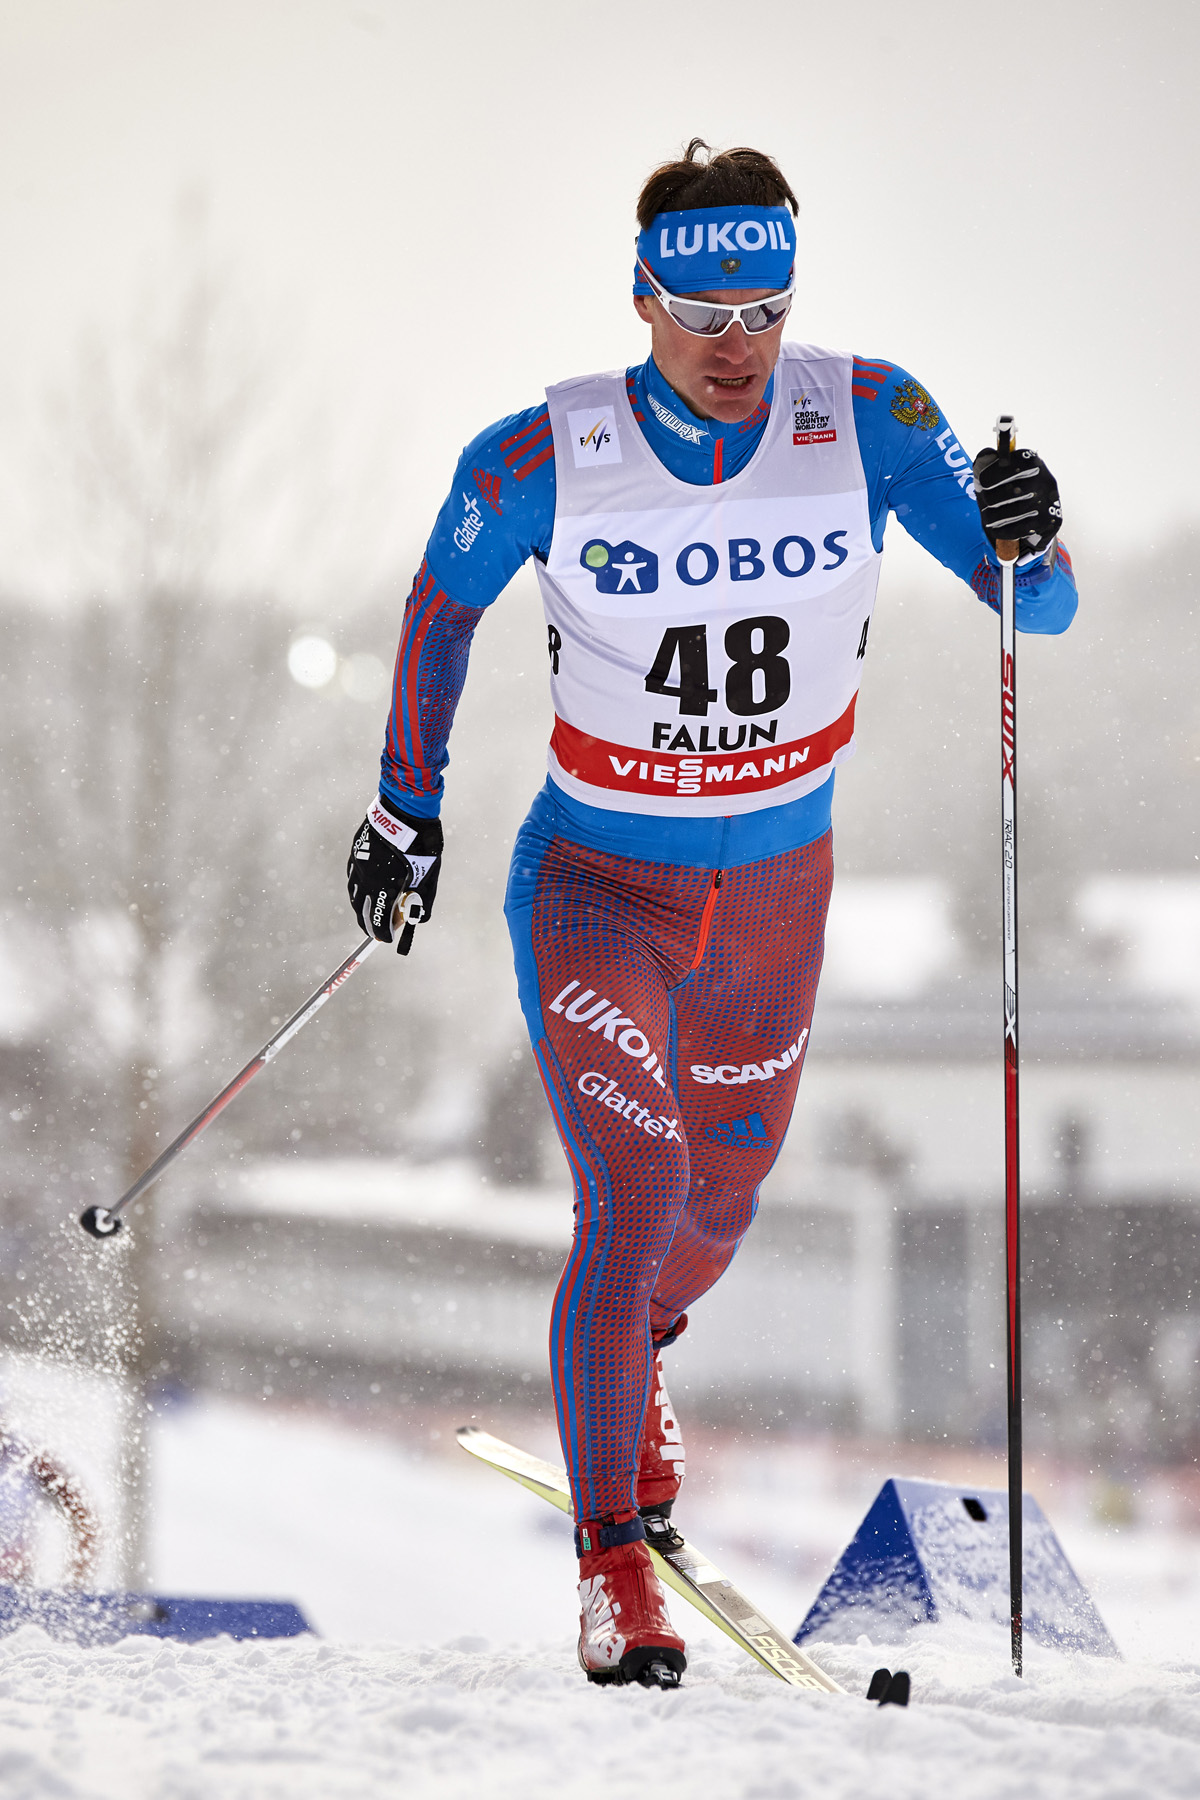 Maxim Vylegzhanin competing in the 10 k classic in Falun, Sweden, in 2016. (Photo: Fischer/NordicFocus)